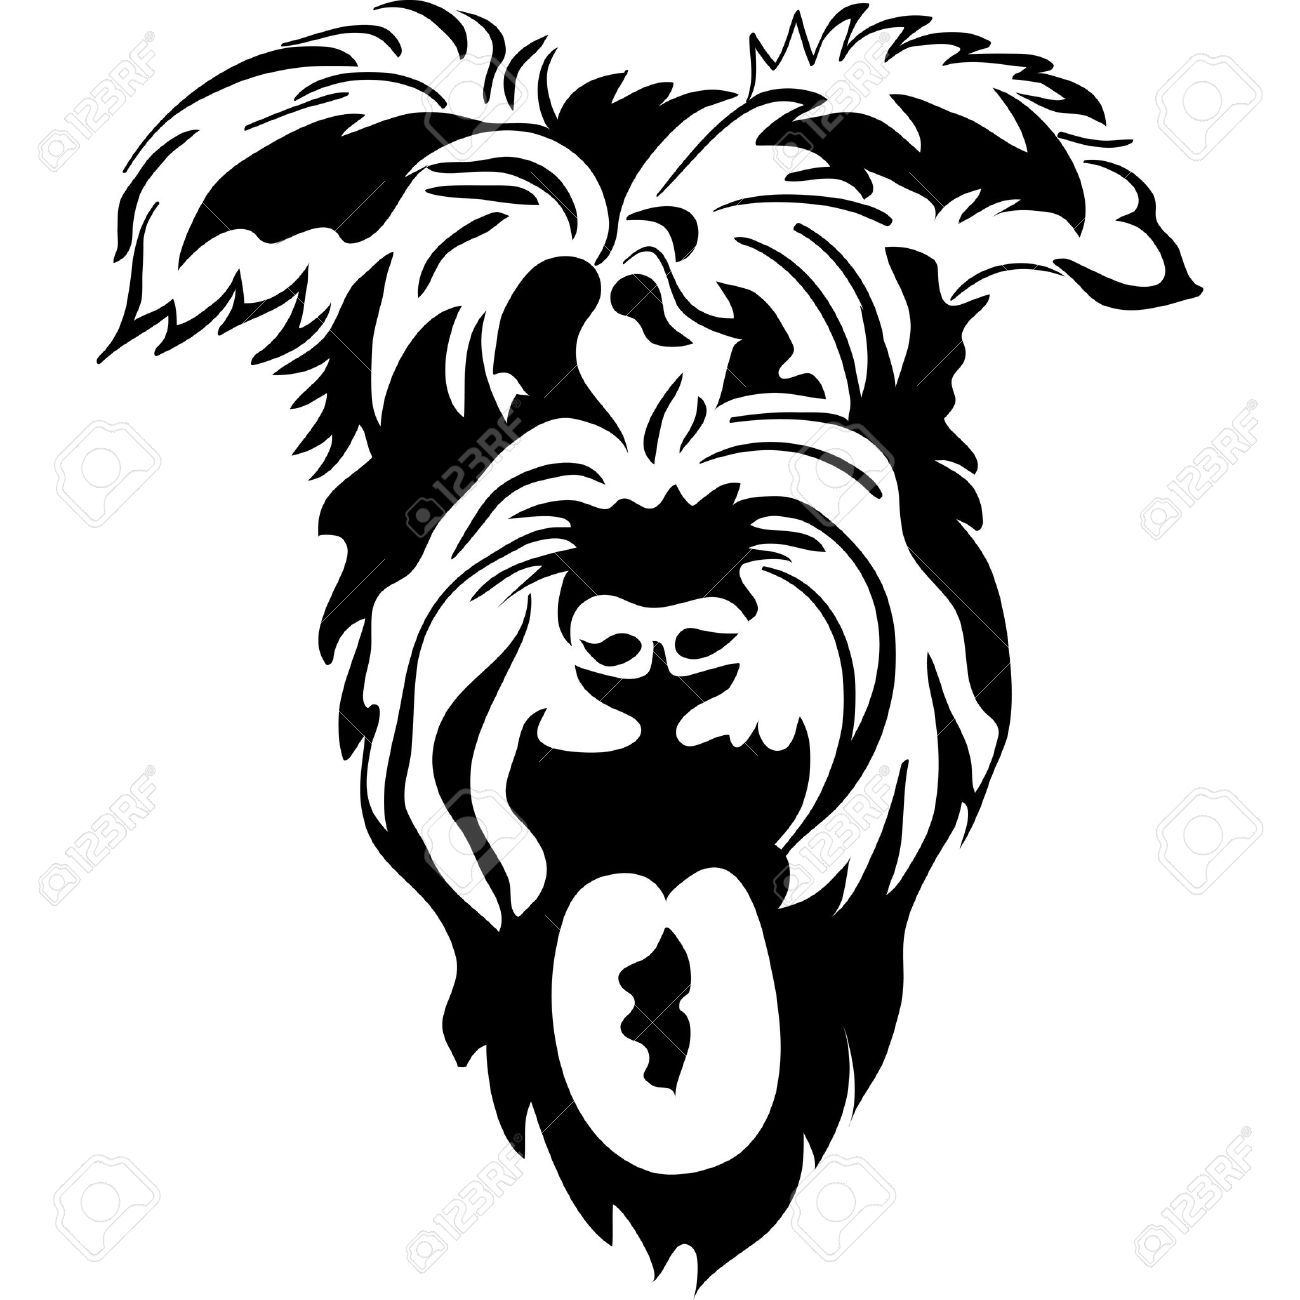 Schnauzer Images Stock Pictures Royalty Free Schnauzer Photos And Stock Photography Schnauzer Art Schnauzer Dogs Schnauzer Silhouette